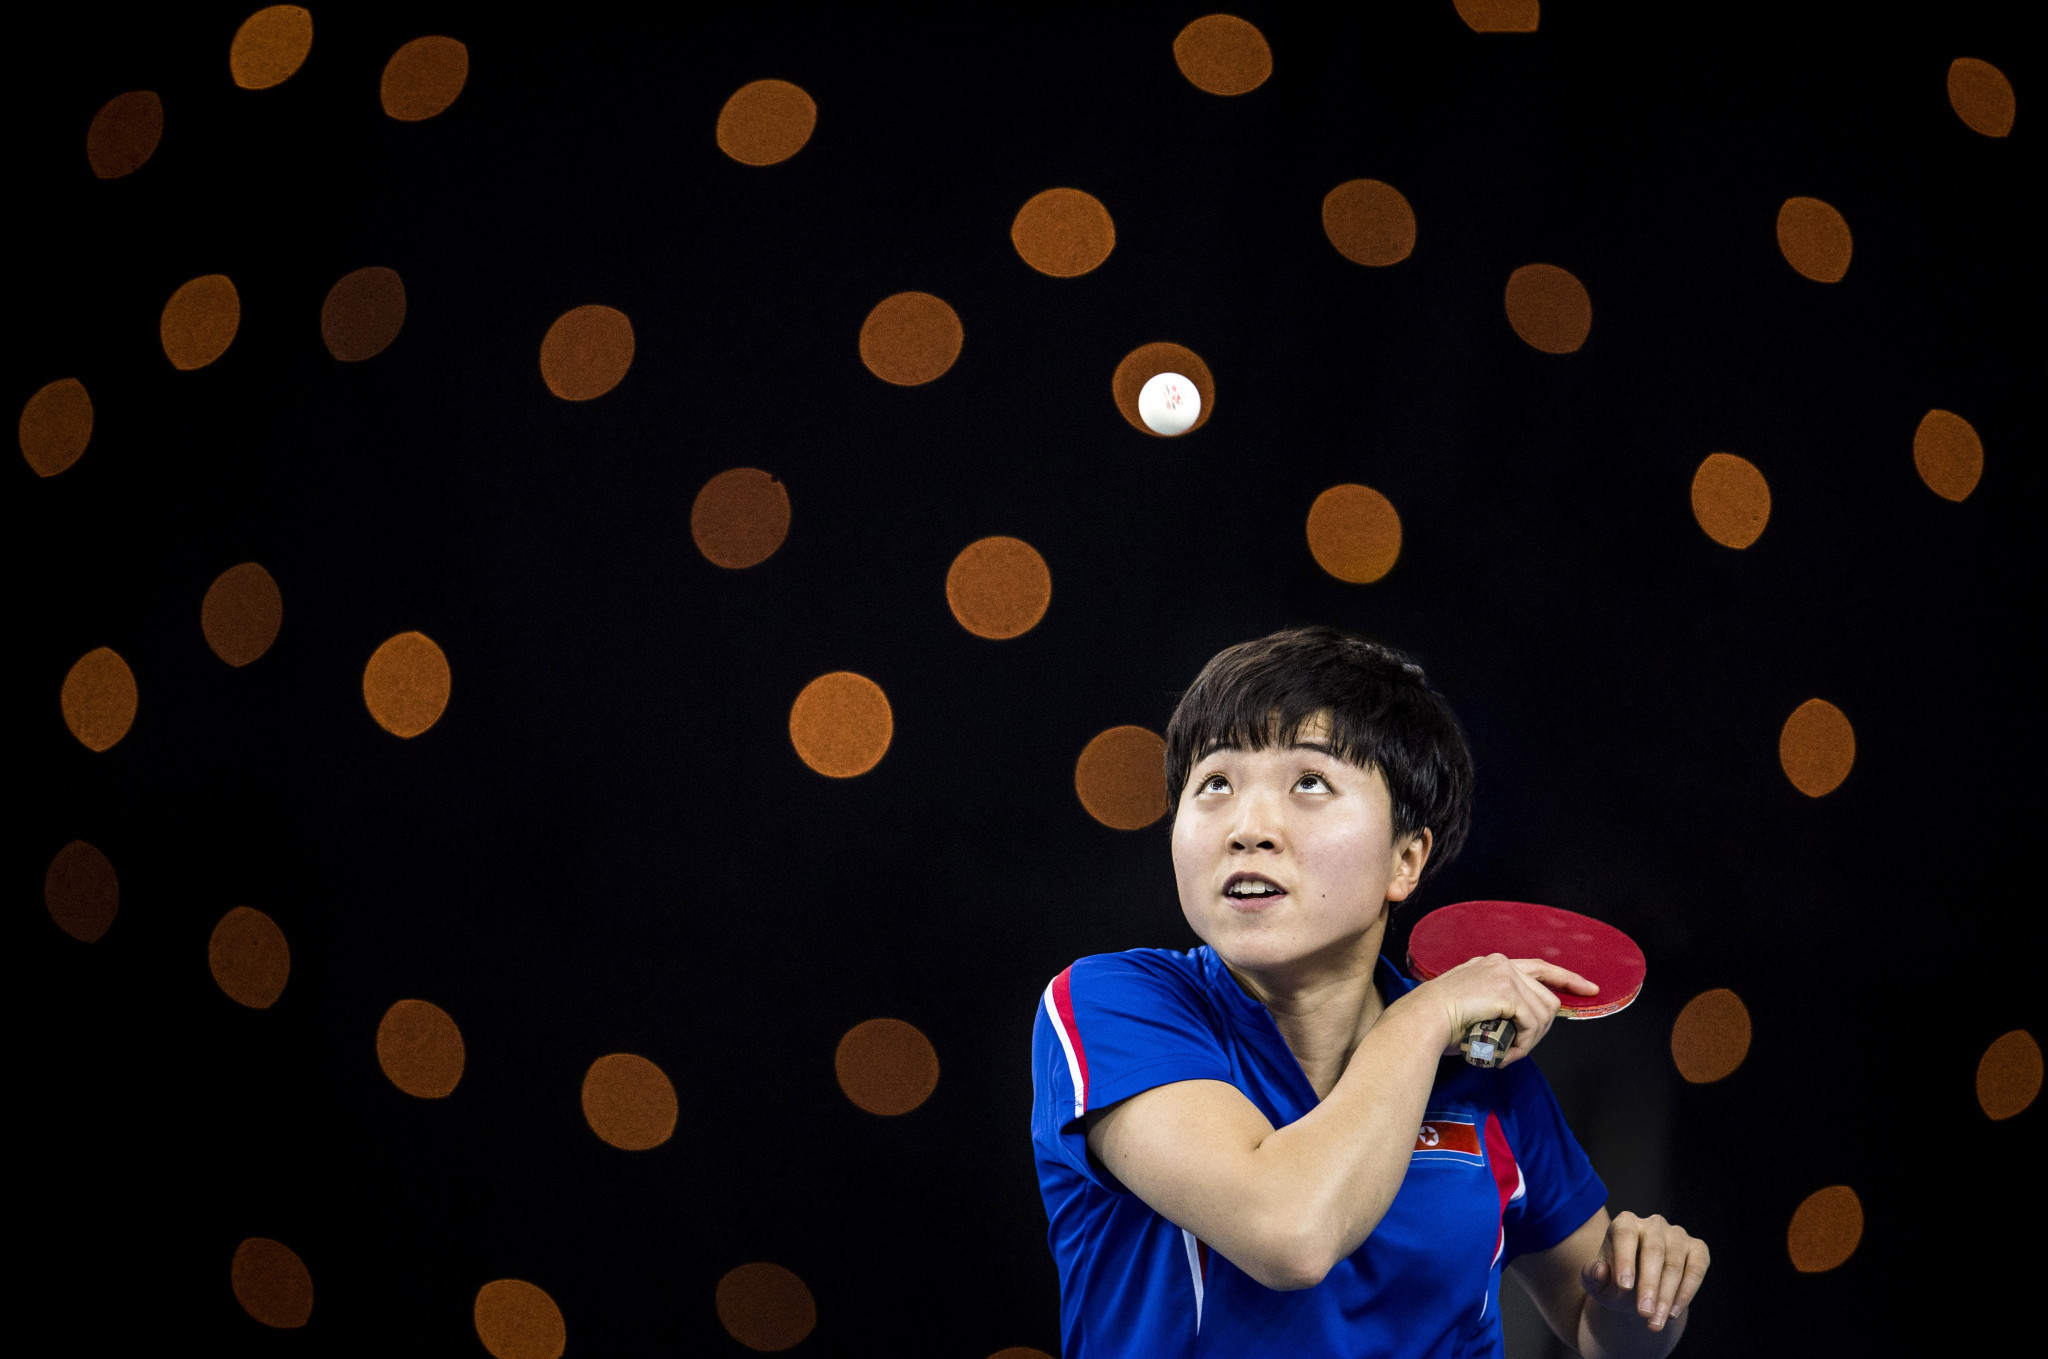 North Korea to face South Korea in women's quarter-finals at World Team Table Tennis Championships